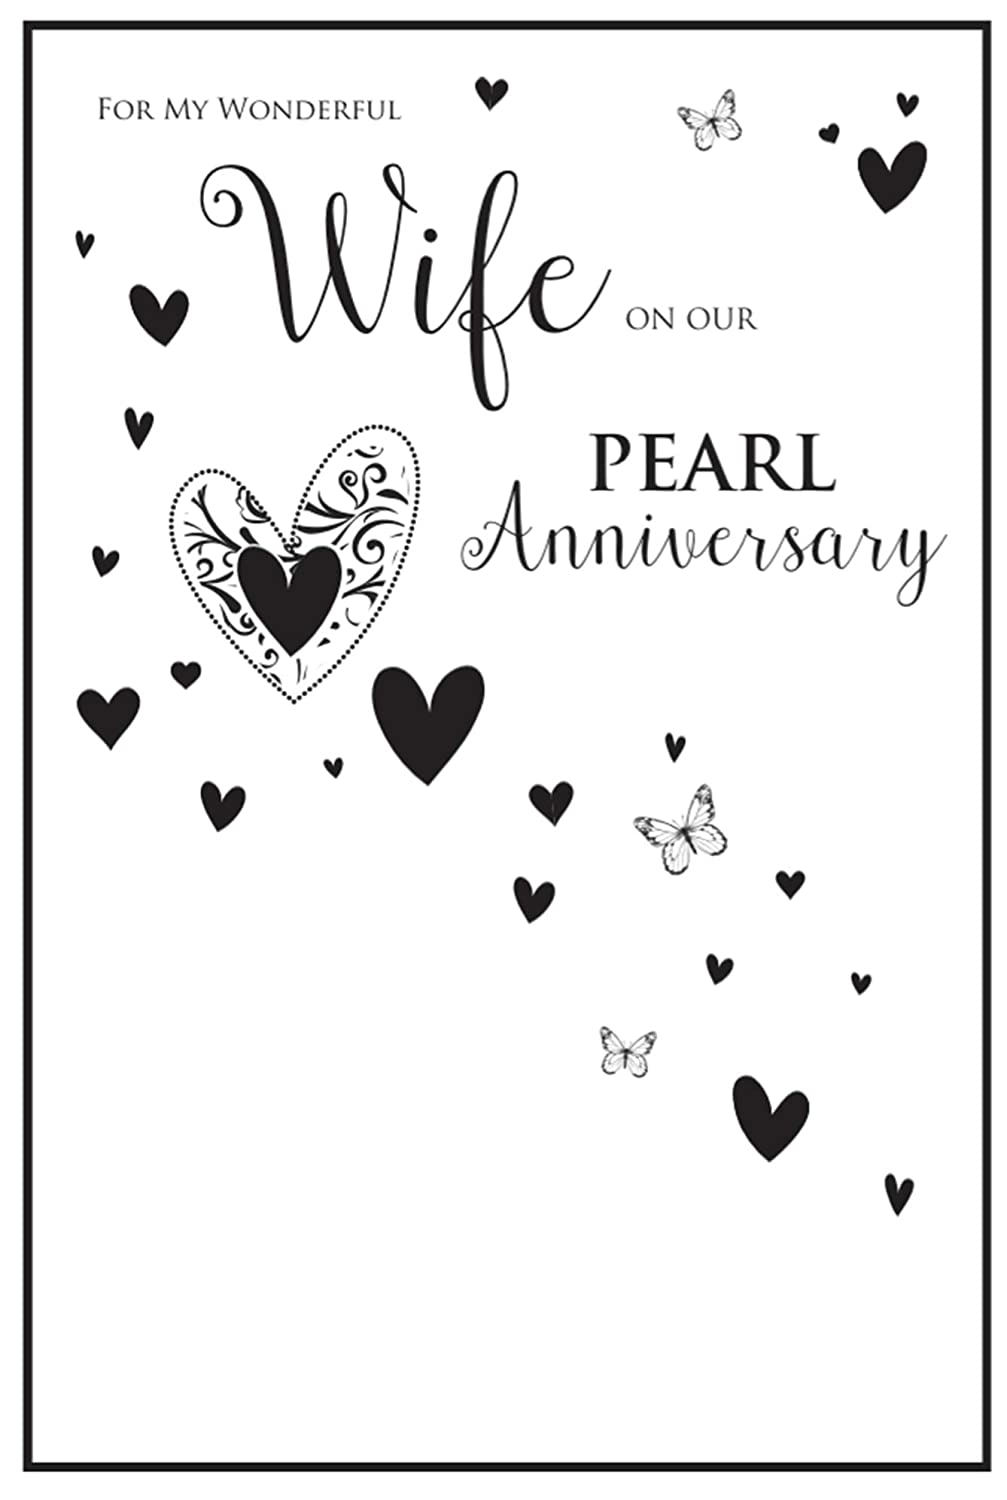 Gibson Large Exquisite Card Wife On Our 30th Pearl Anniversary